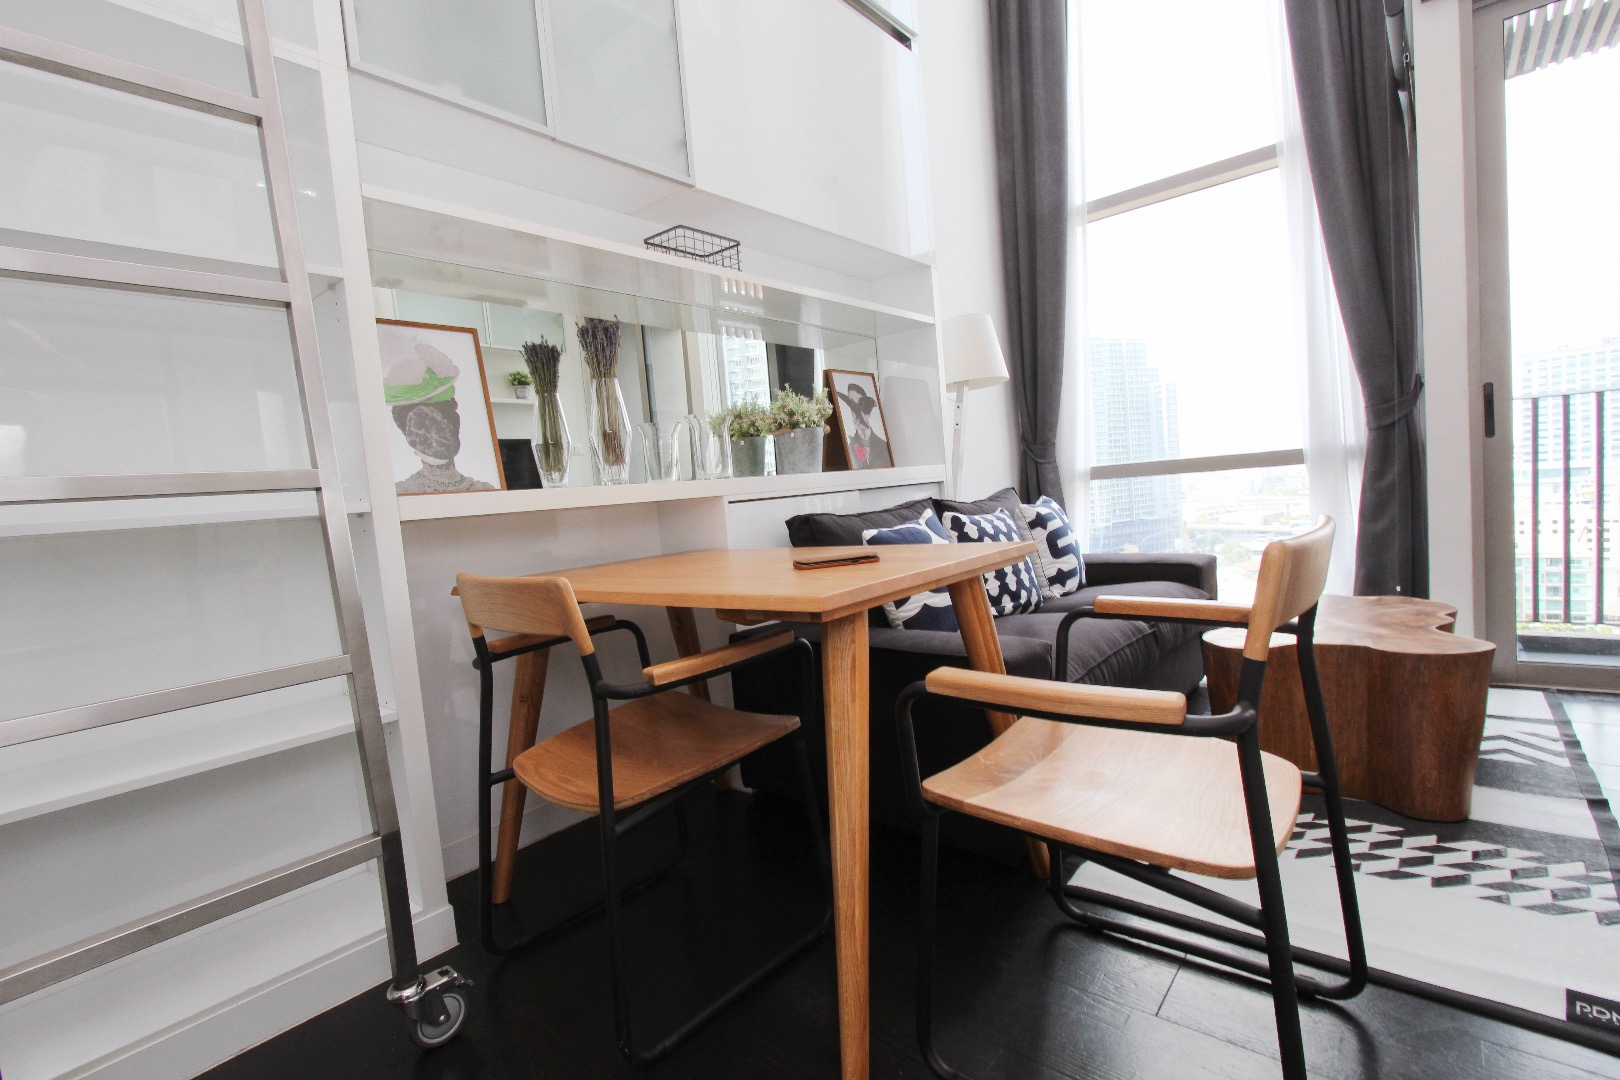 For RentCondoSukhumvit, Asoke, Thonglor : Pet Friendly Unit for rent at Sukhumvit 38 Morph38 Unit For Rent at Morph38 Unit Type: 1 Bedroom Duplex Unit Size: 35 Sq.m Floor: 10th floor with moon roof please see the view from the photos.